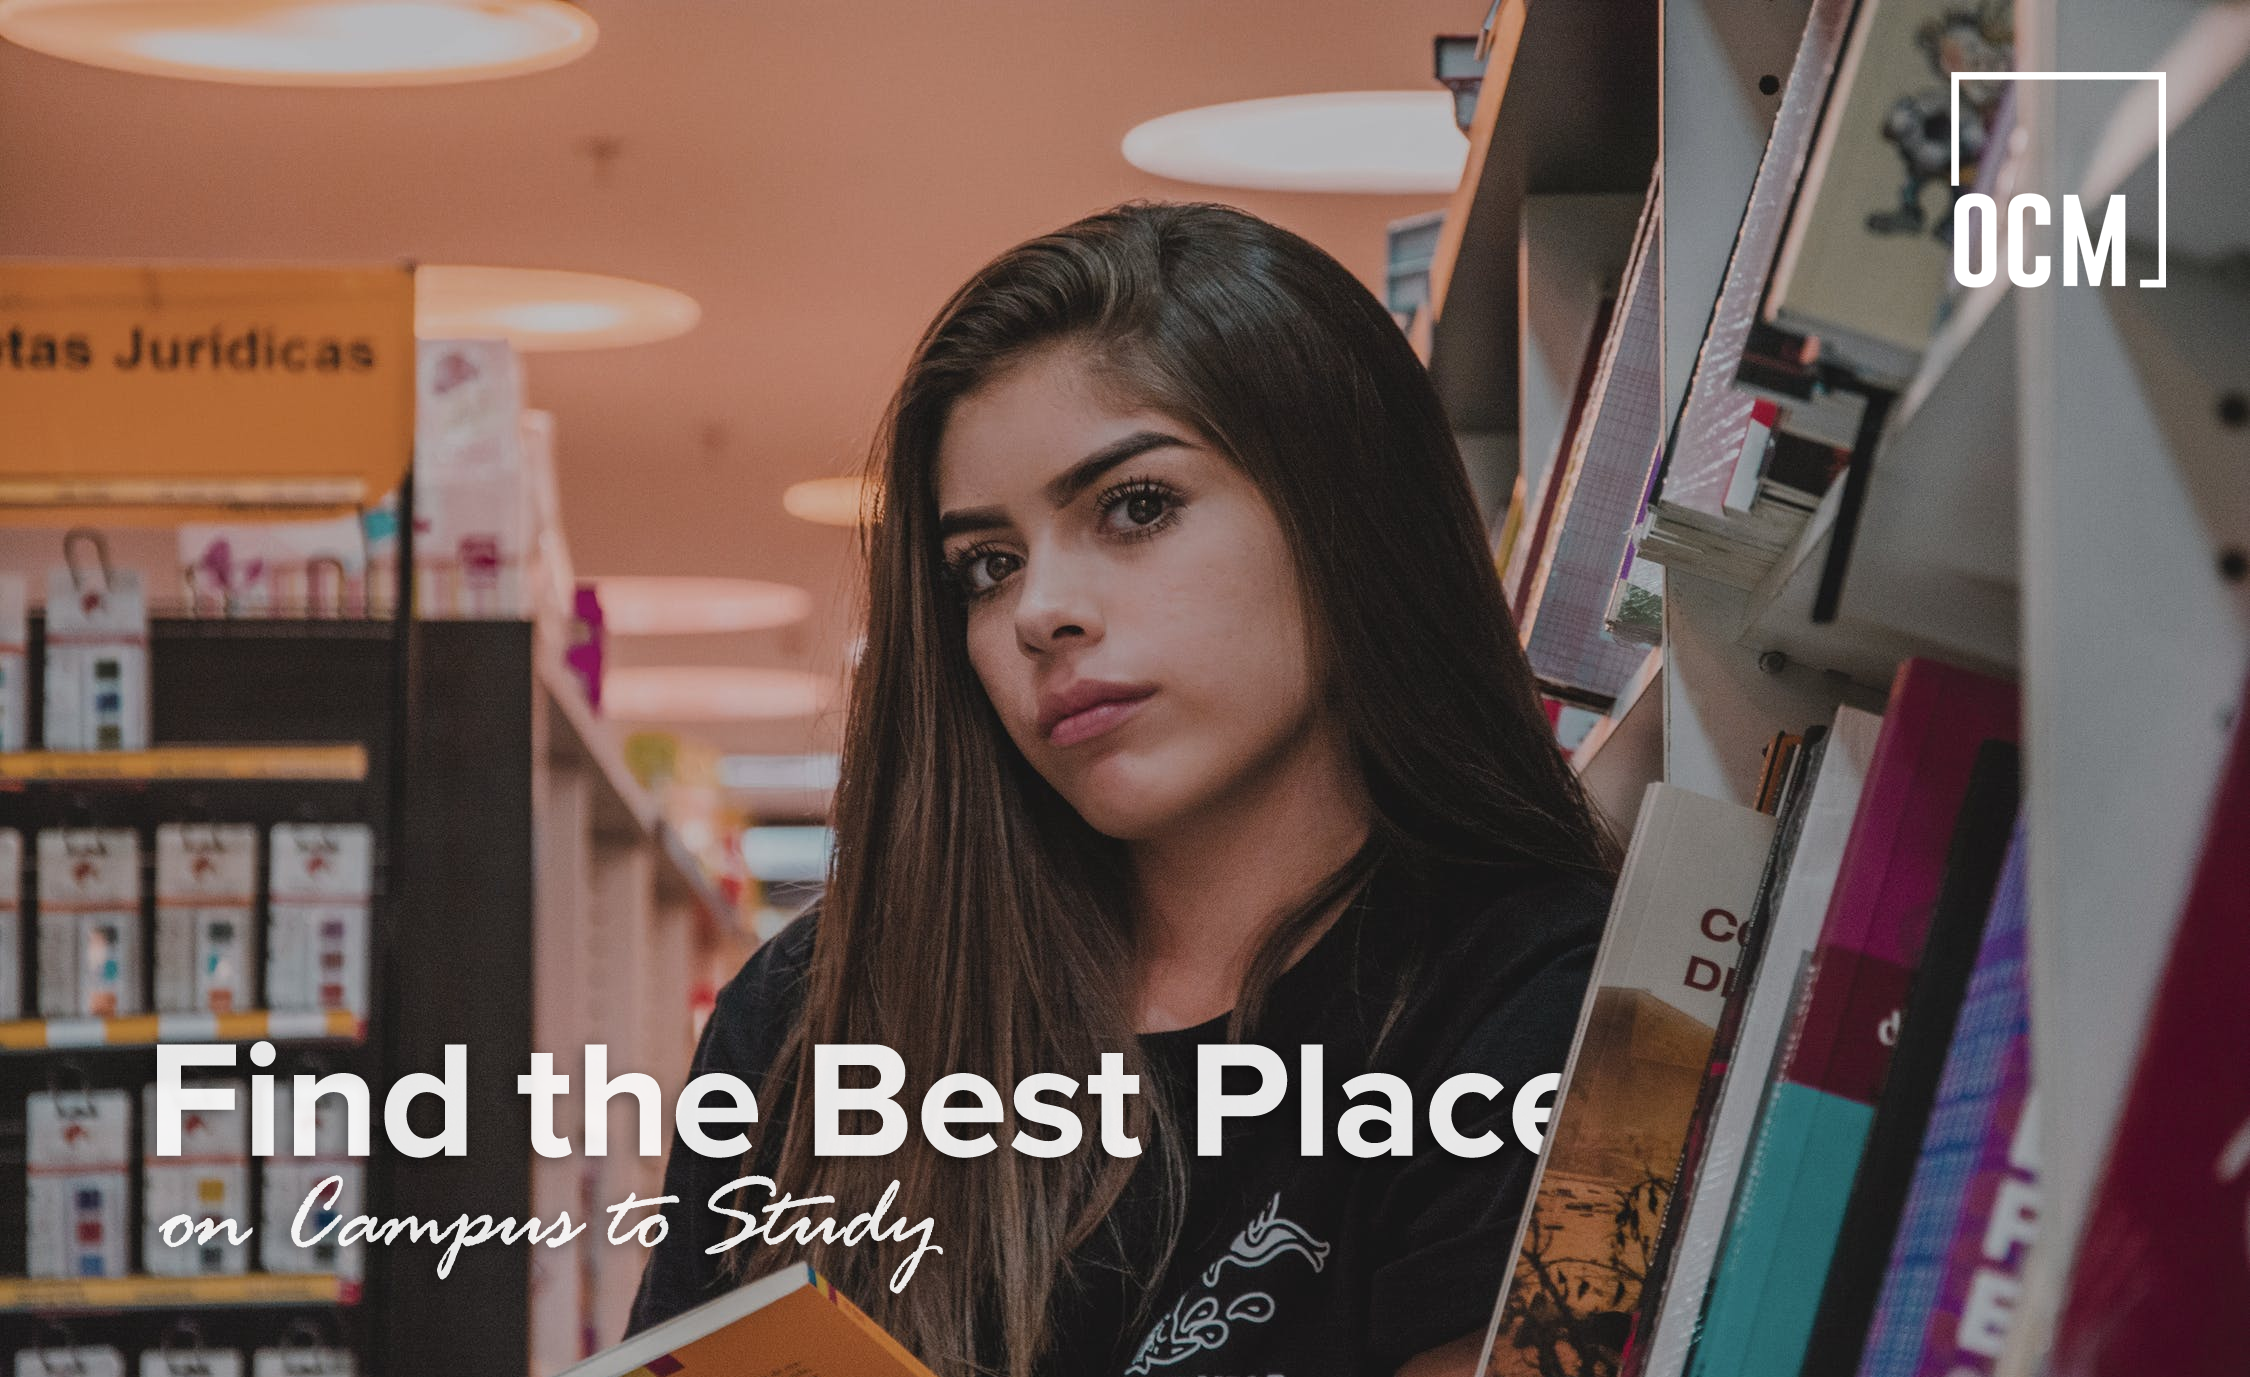 How to Find the Best Place on Campus to Study